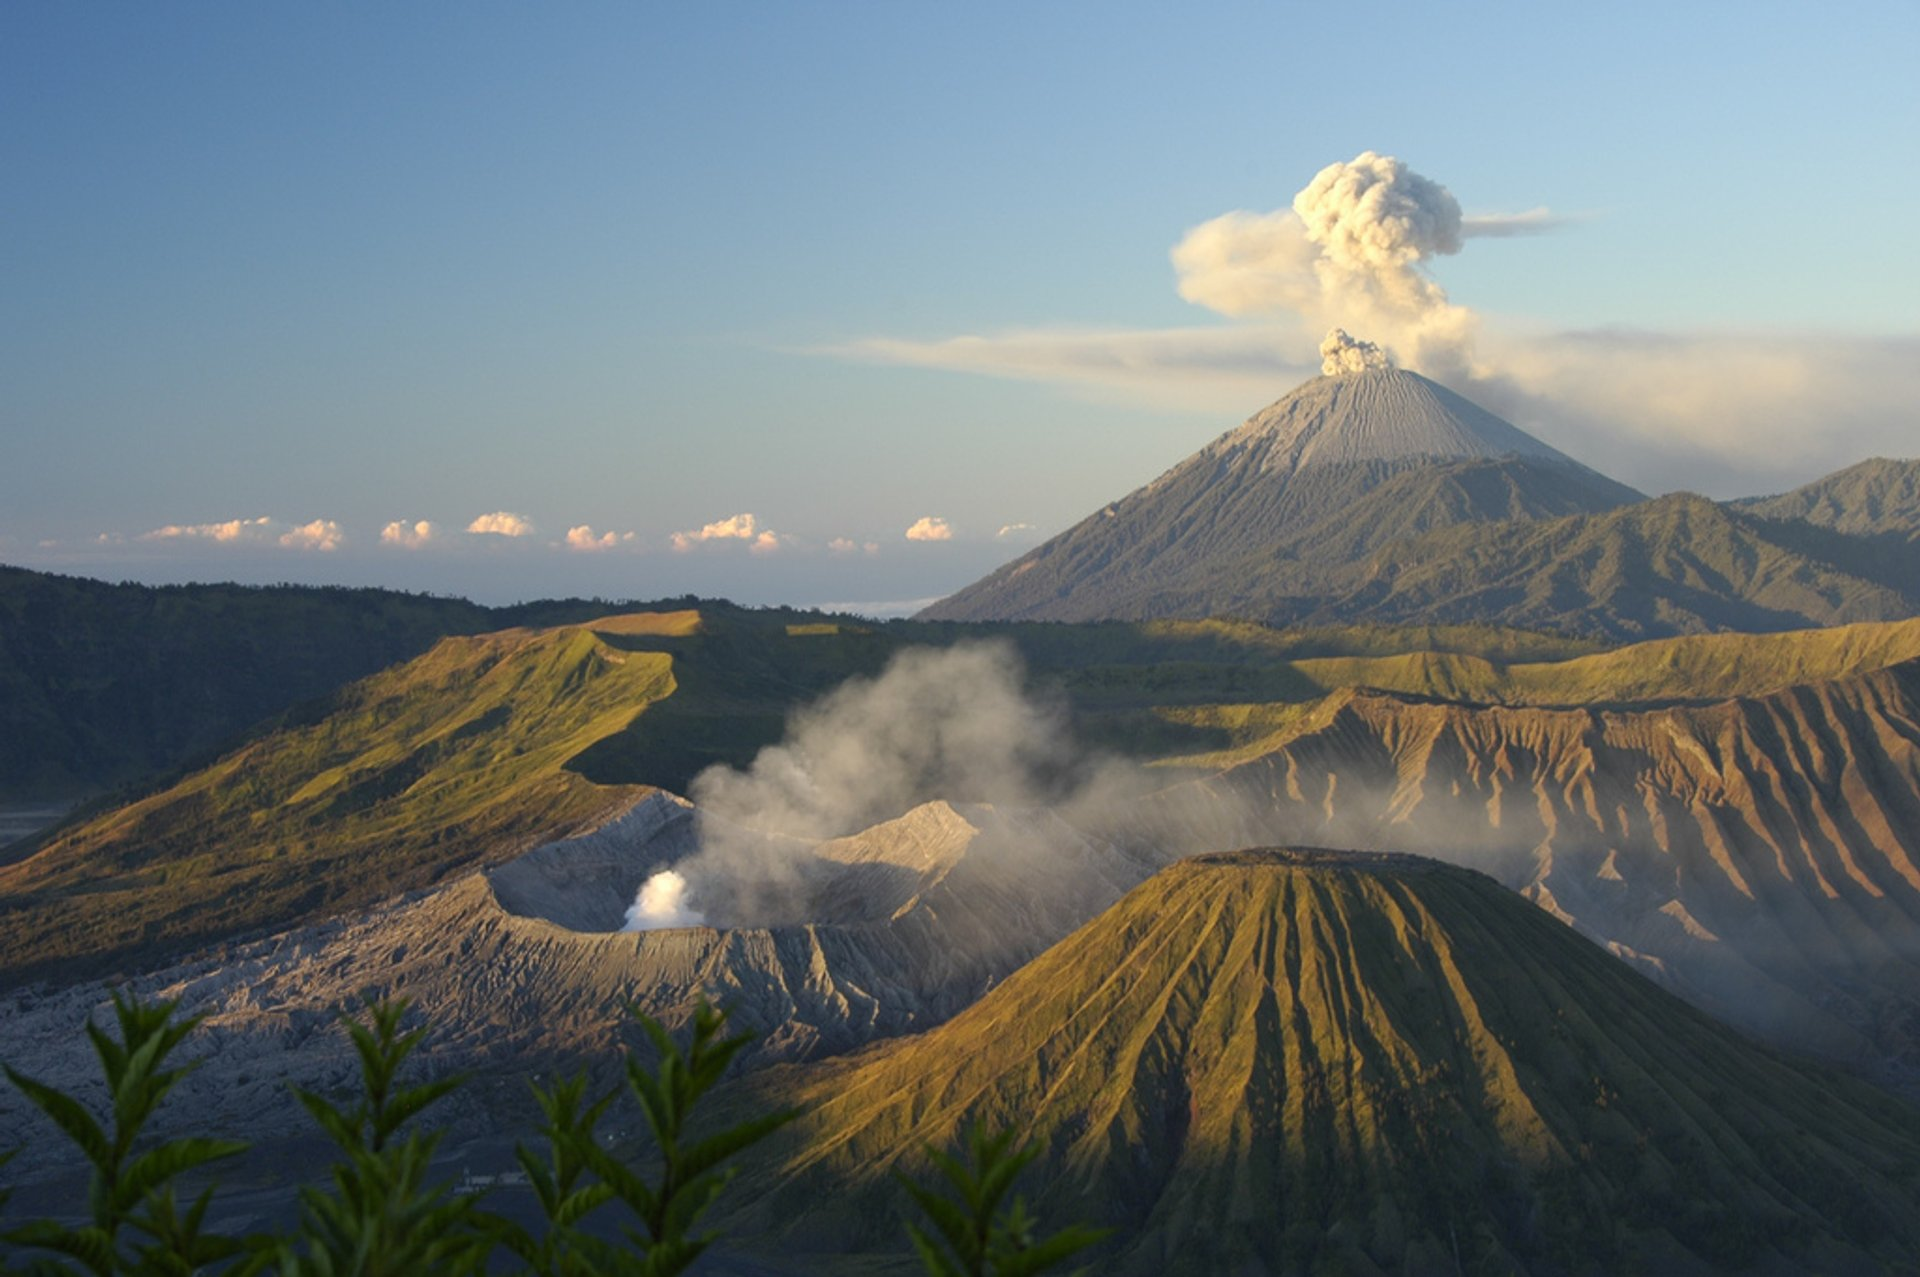 Sunrise over Mt Bromo from Penanjakan viewpoint 2020